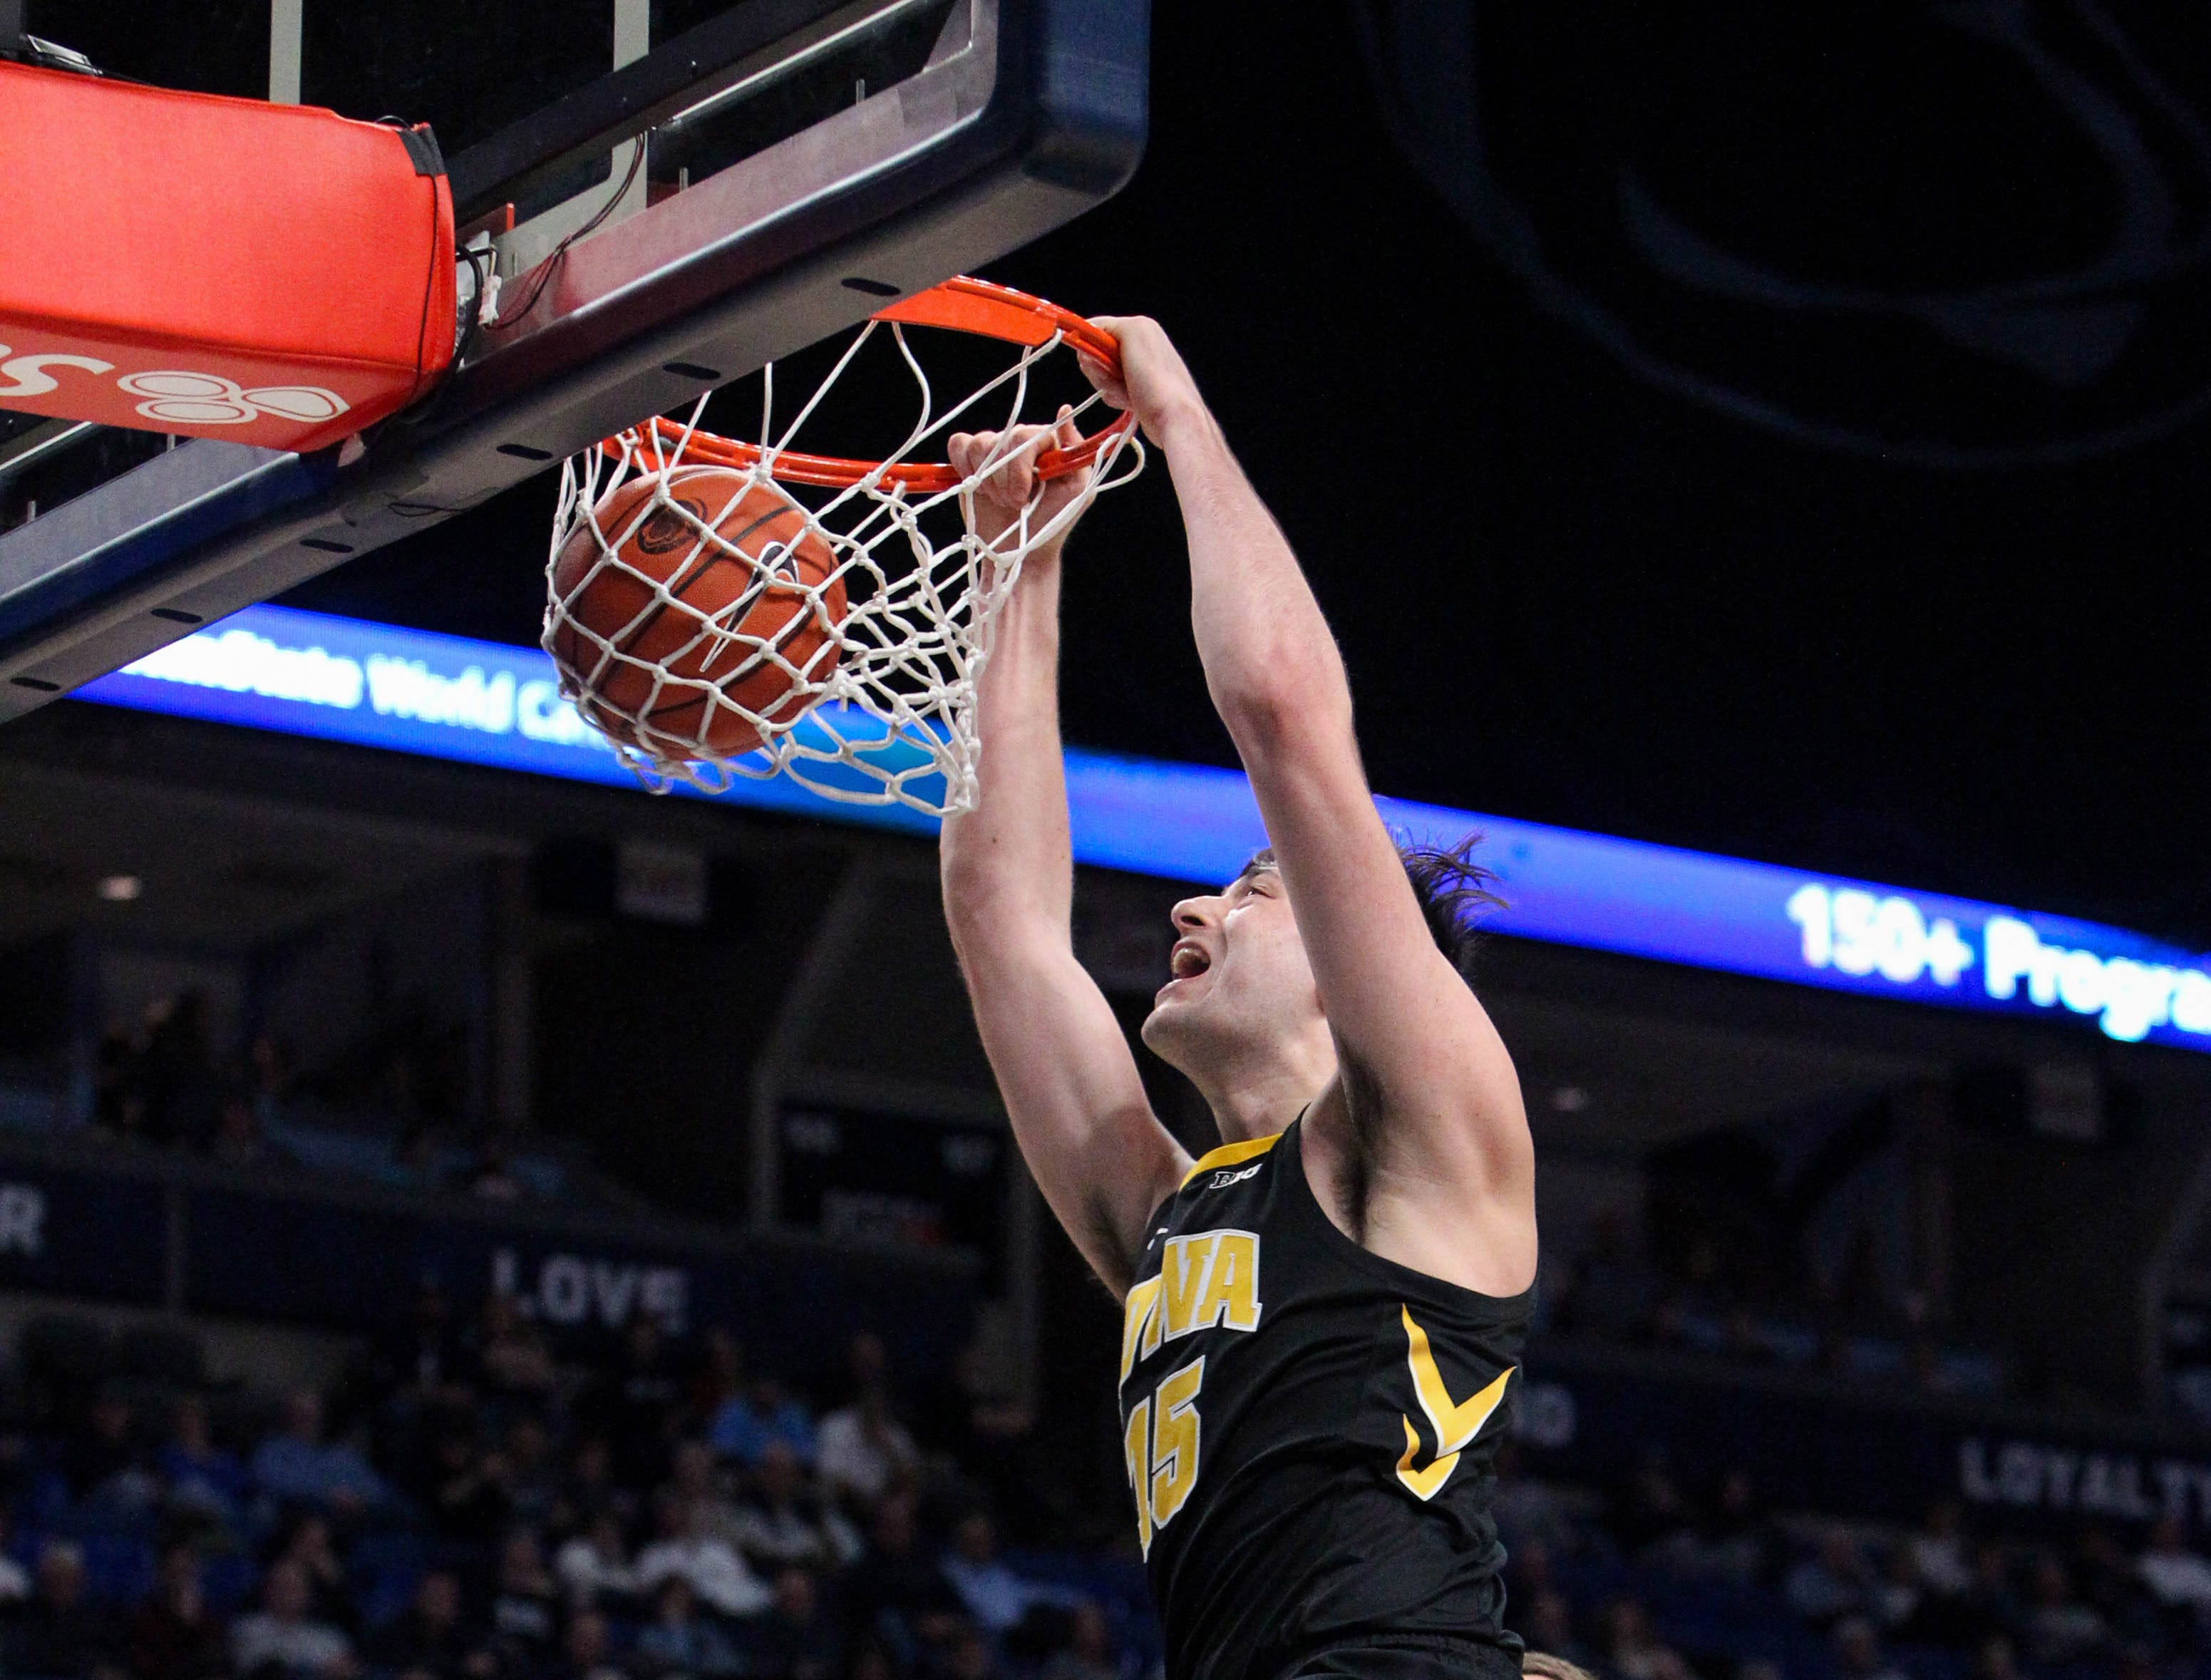 Jan 16, 2019; University Park, PA, USA; Iowa Hawkeyes forward Ryan Kriener (15) dunks the ball during the second half against the Penn State Nittany Lions at Bryce Jordan Center. Mandatory Credit: Matthew O'Haren-USA TODAY Sports